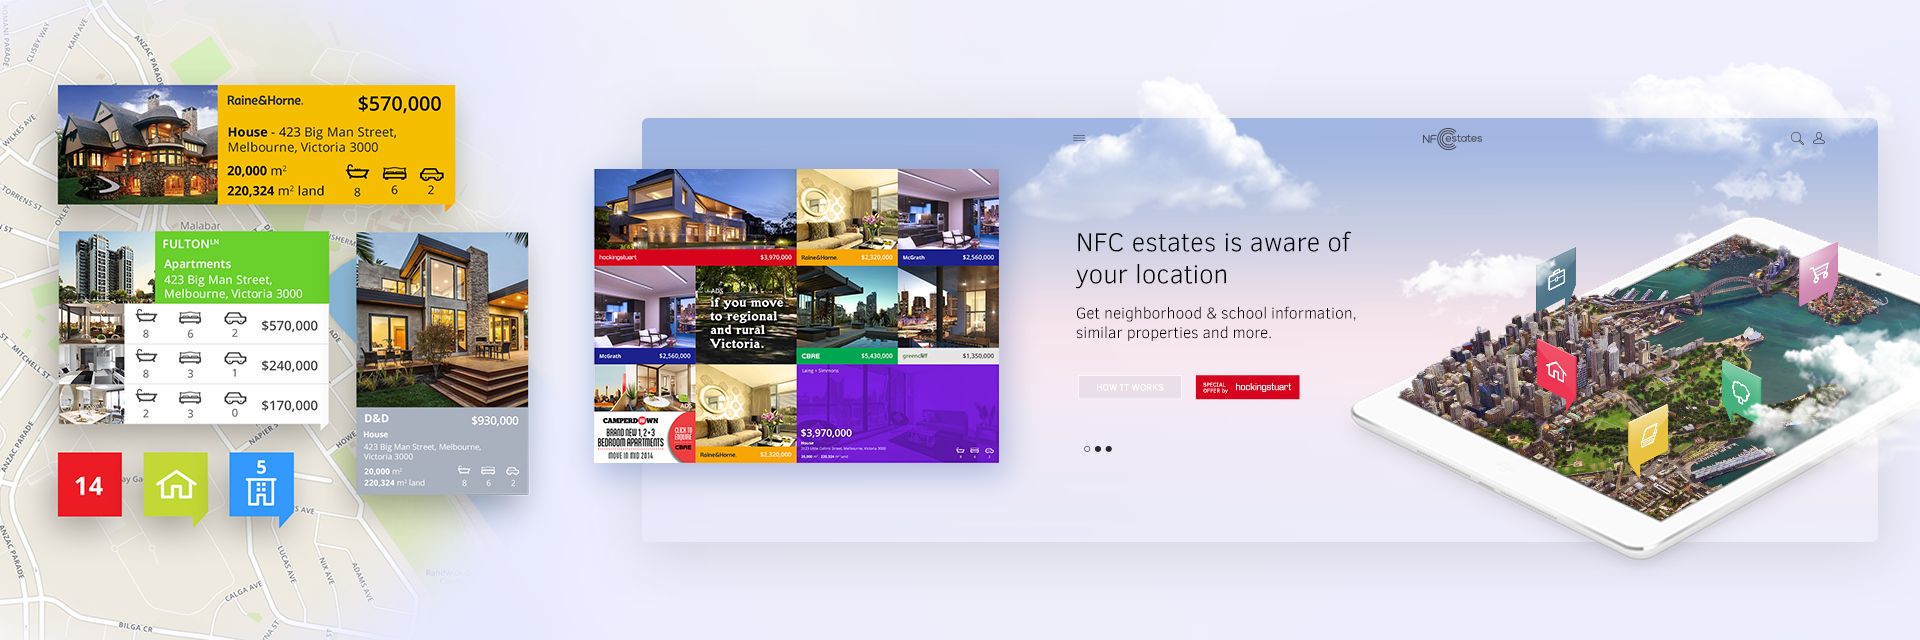 Branding and Digital design, web, ui/ux for a Realestate online website